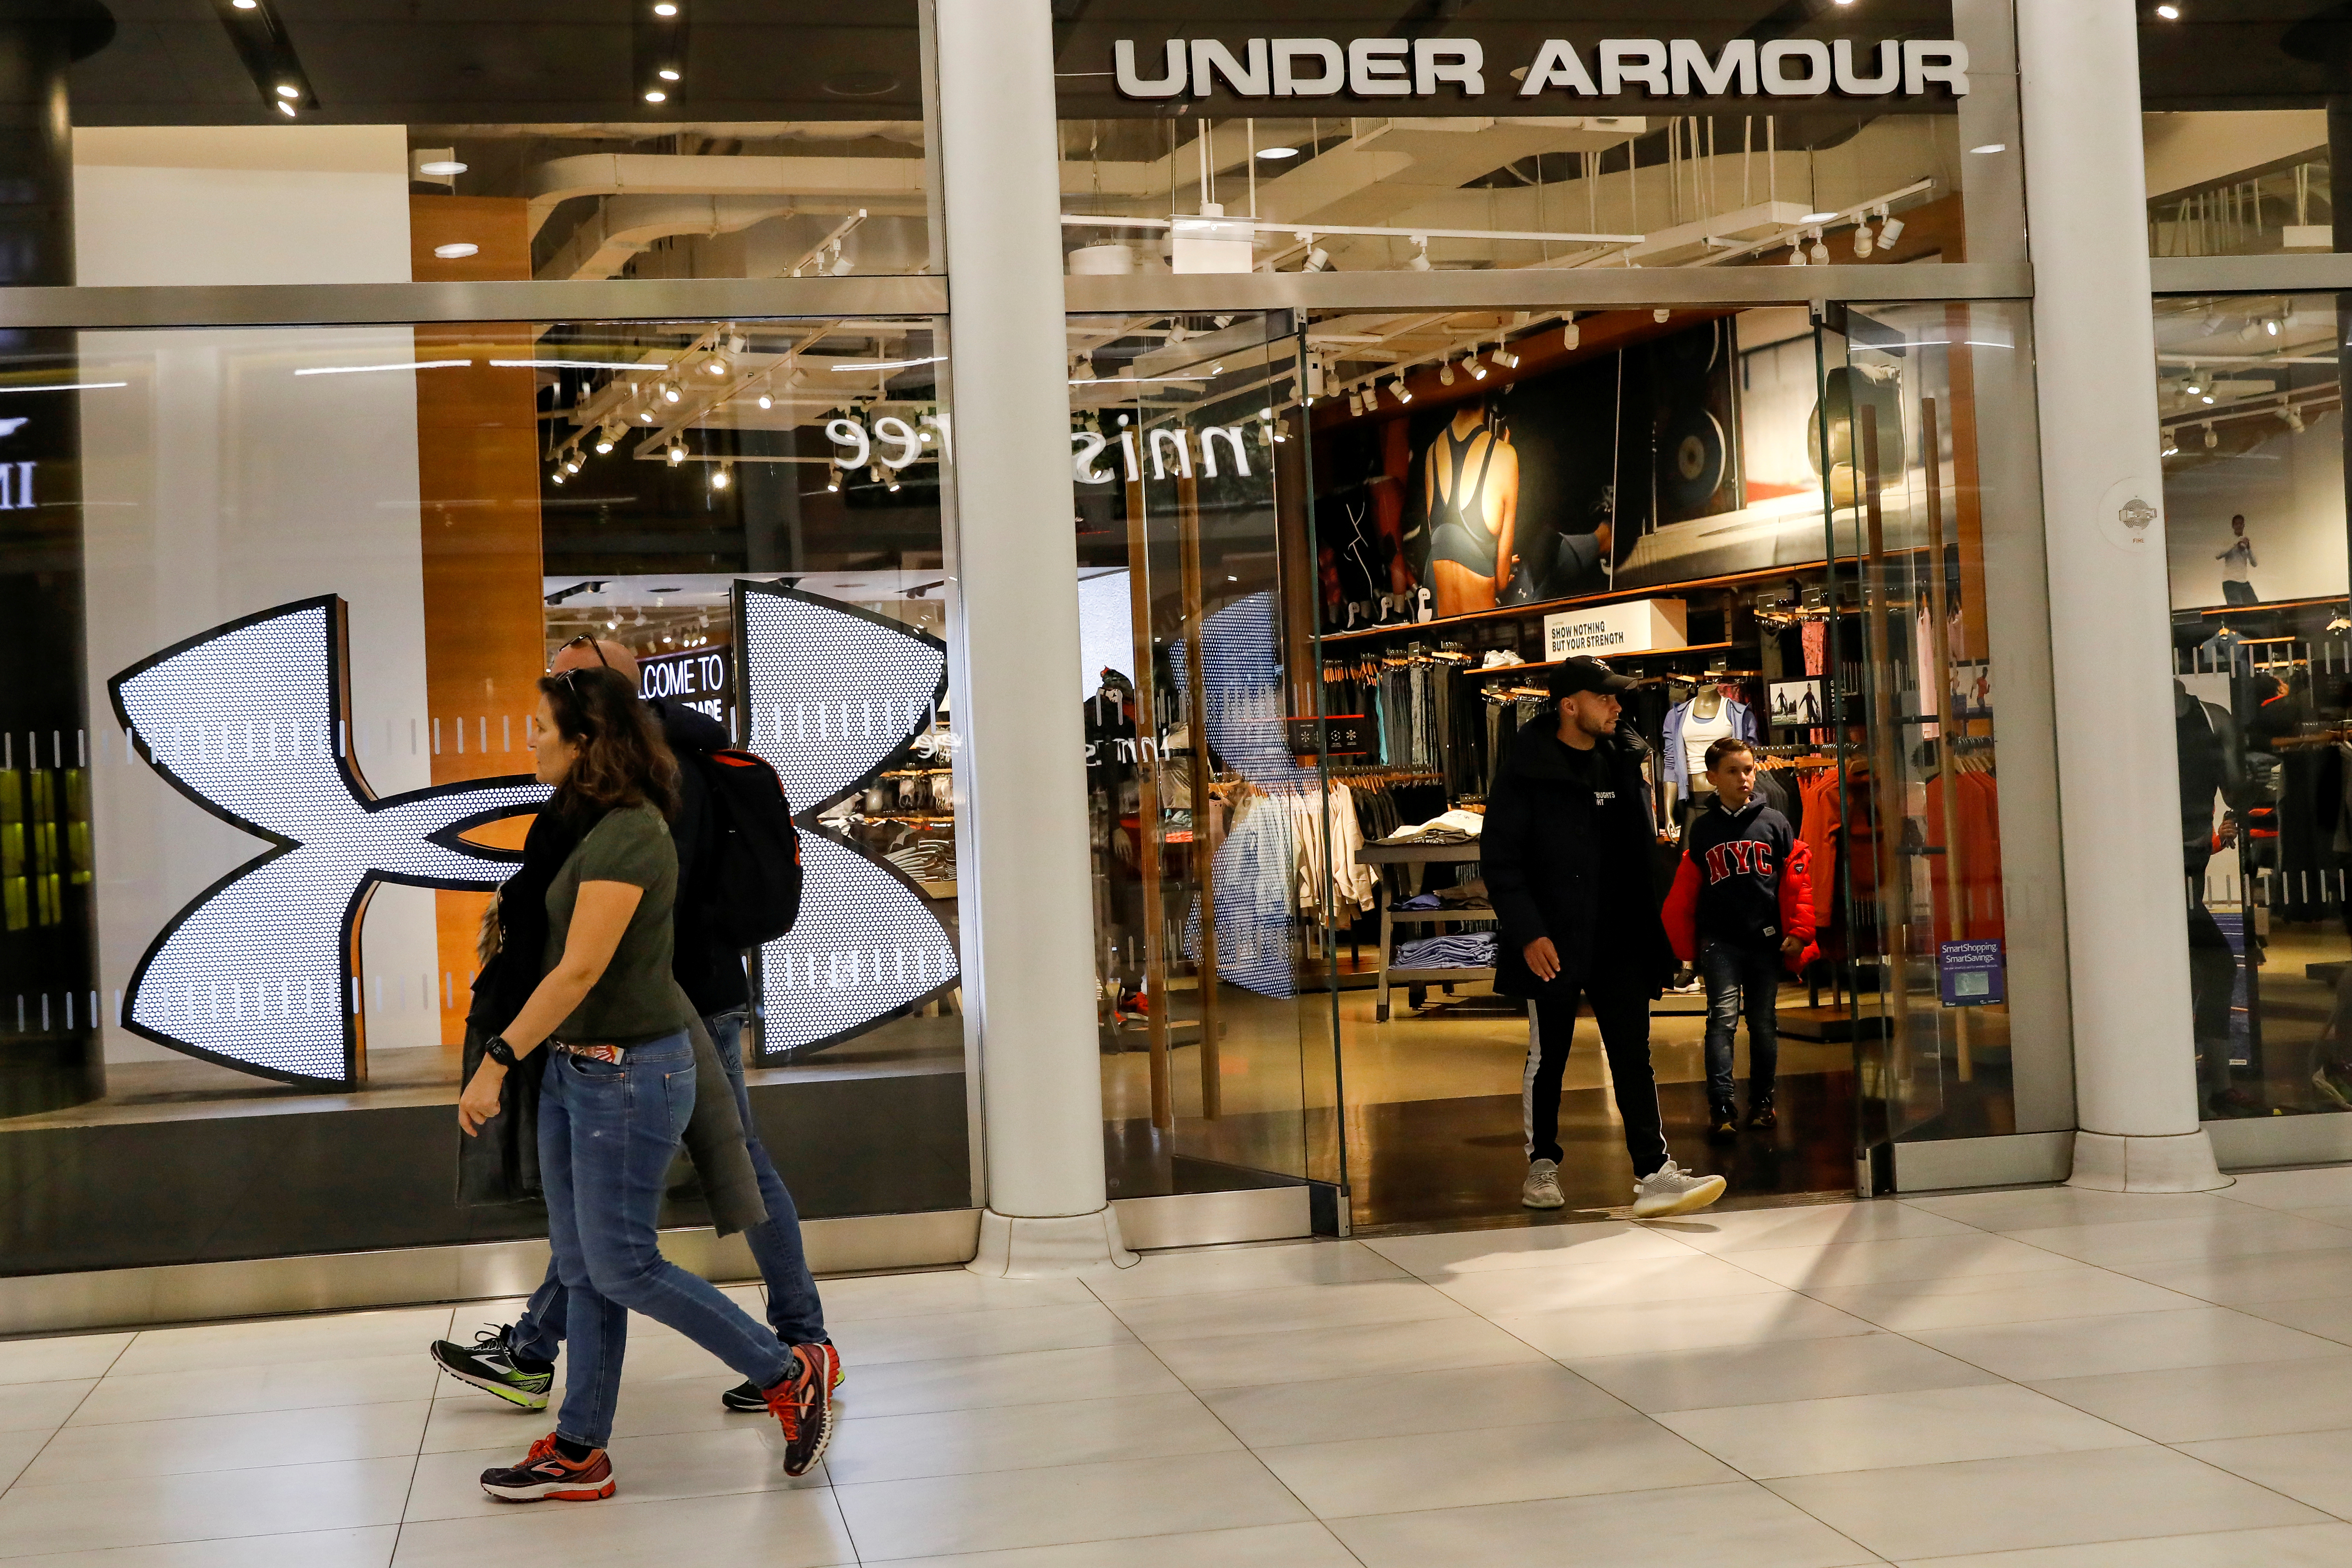 Customers exit an Under Armour store in New York City, U.S., November 4, 2019. REUTERS/Brendan McDermid